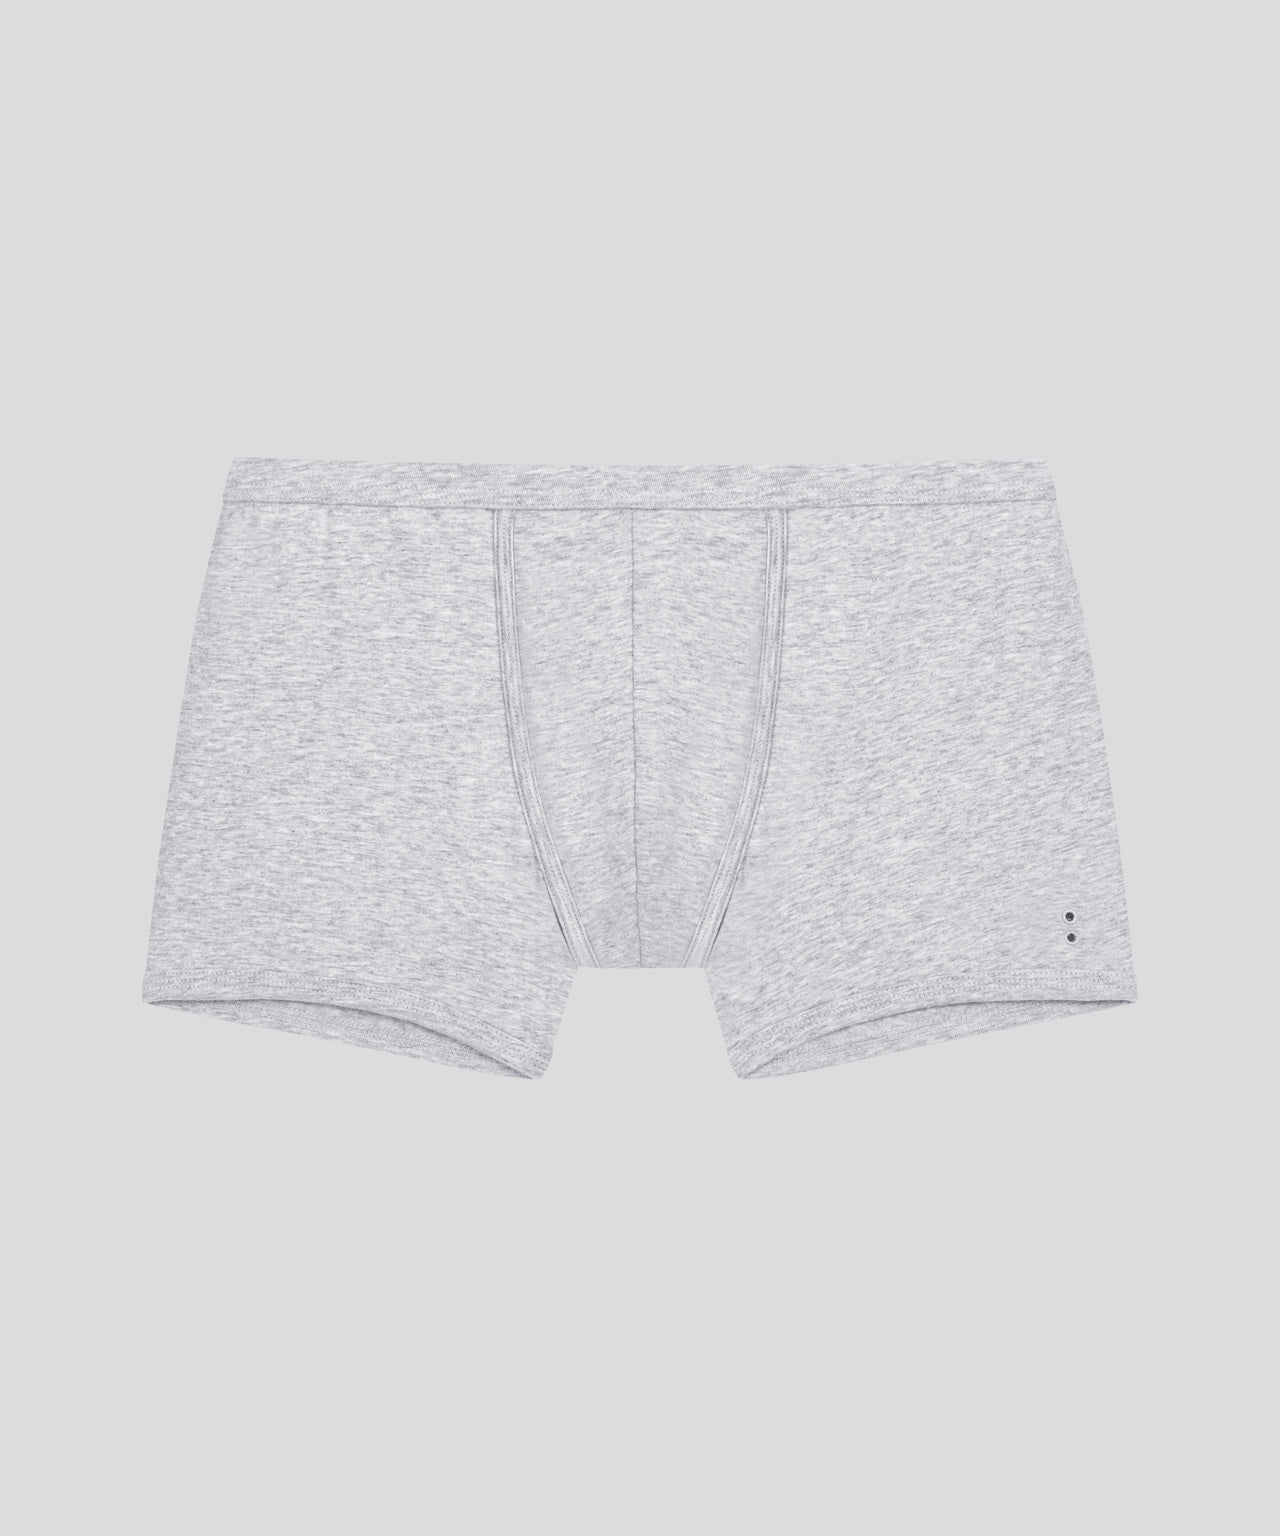 747 Boxer Briefs Kit - grey melange